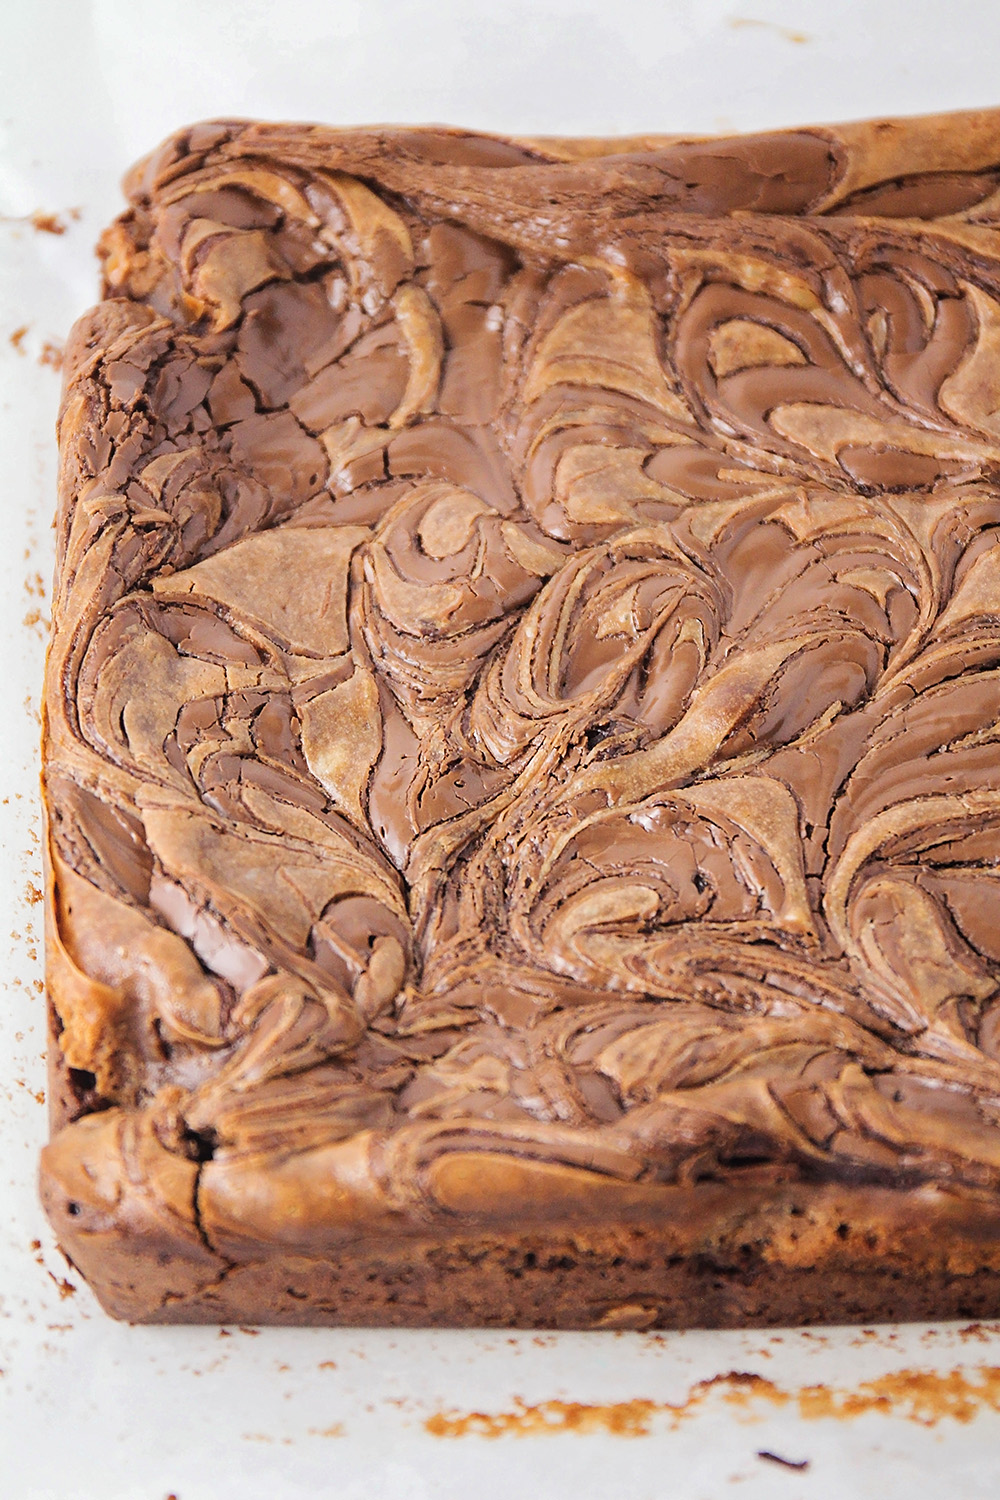 These decadent and delicious Nutella cheesecake brownies have the perfect combination of flavors, and are so rich and chocolatey!